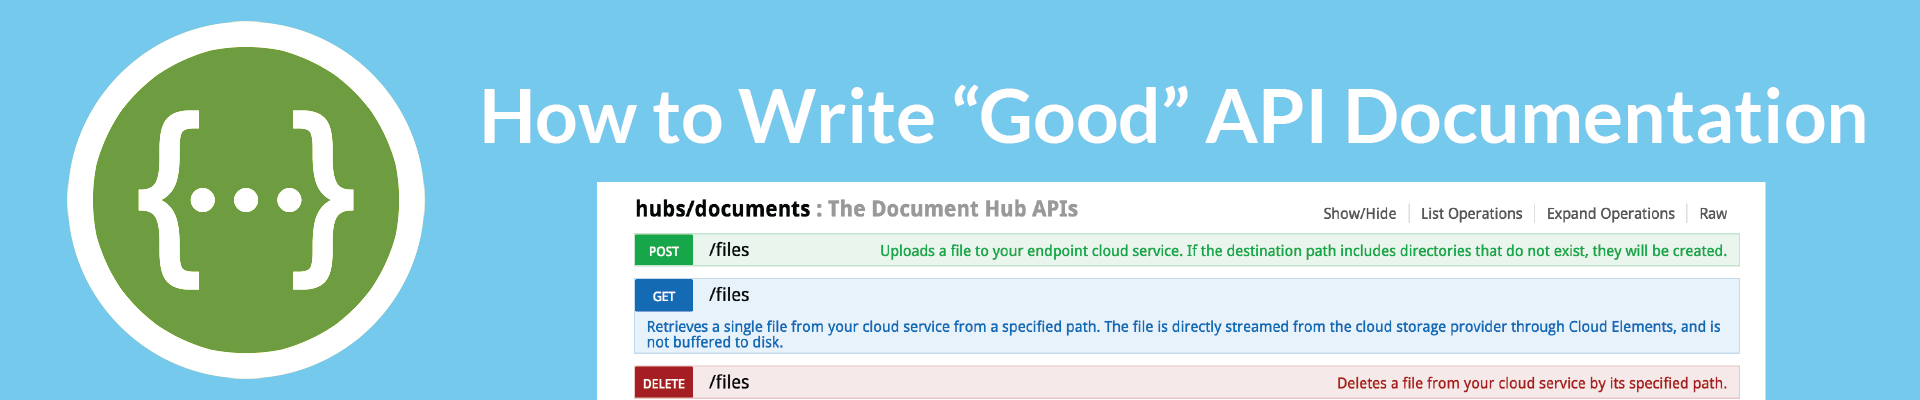 21 Software Documentation Tools for Every Stage of Project Implementation